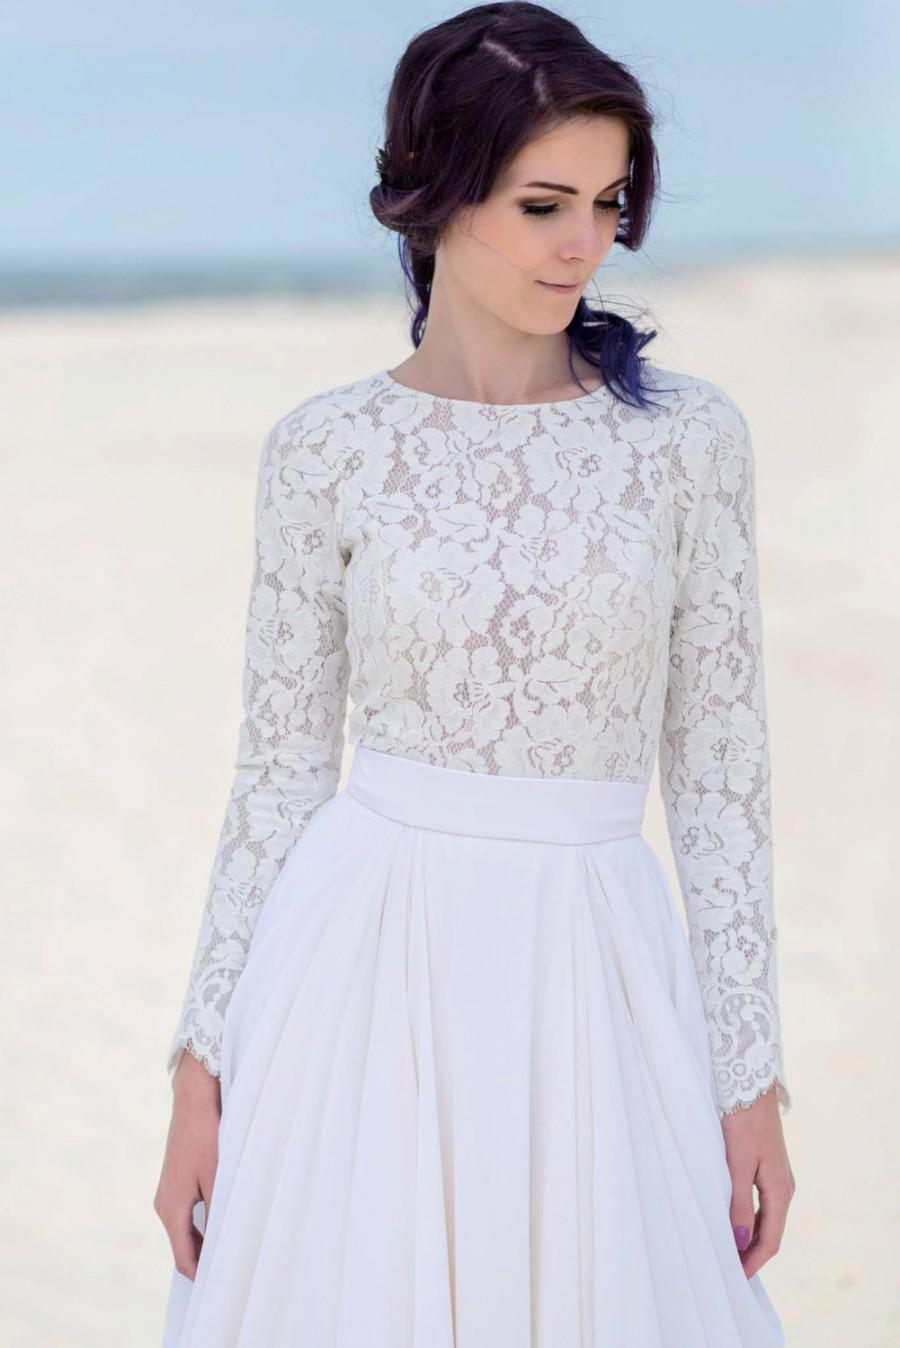 Eirene Long Sleeve Bridal Top Sweater Blouse Thick Lace Separate